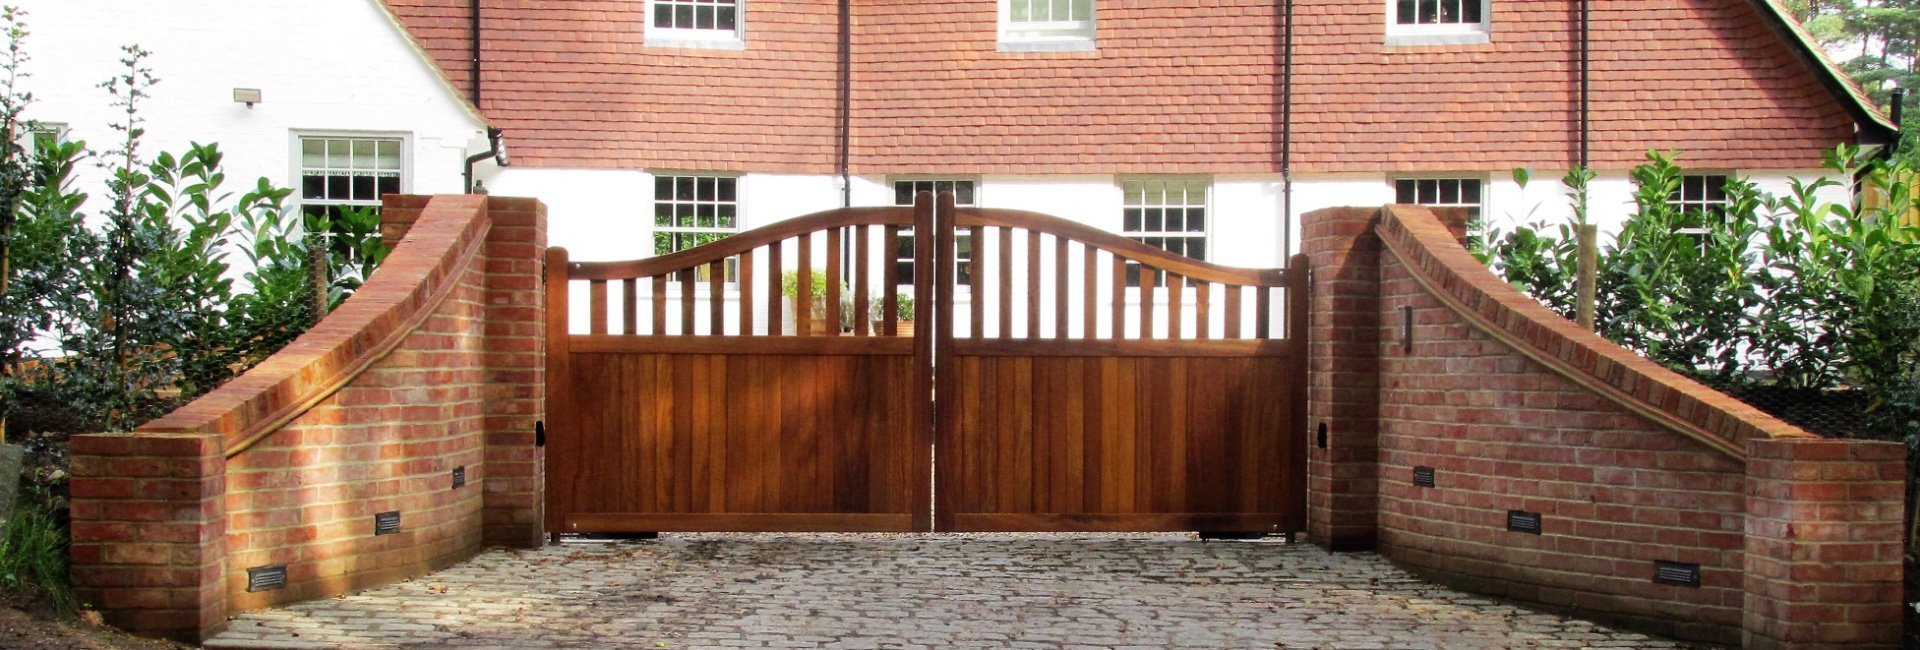 tall curved wooden gates with curved brickwork